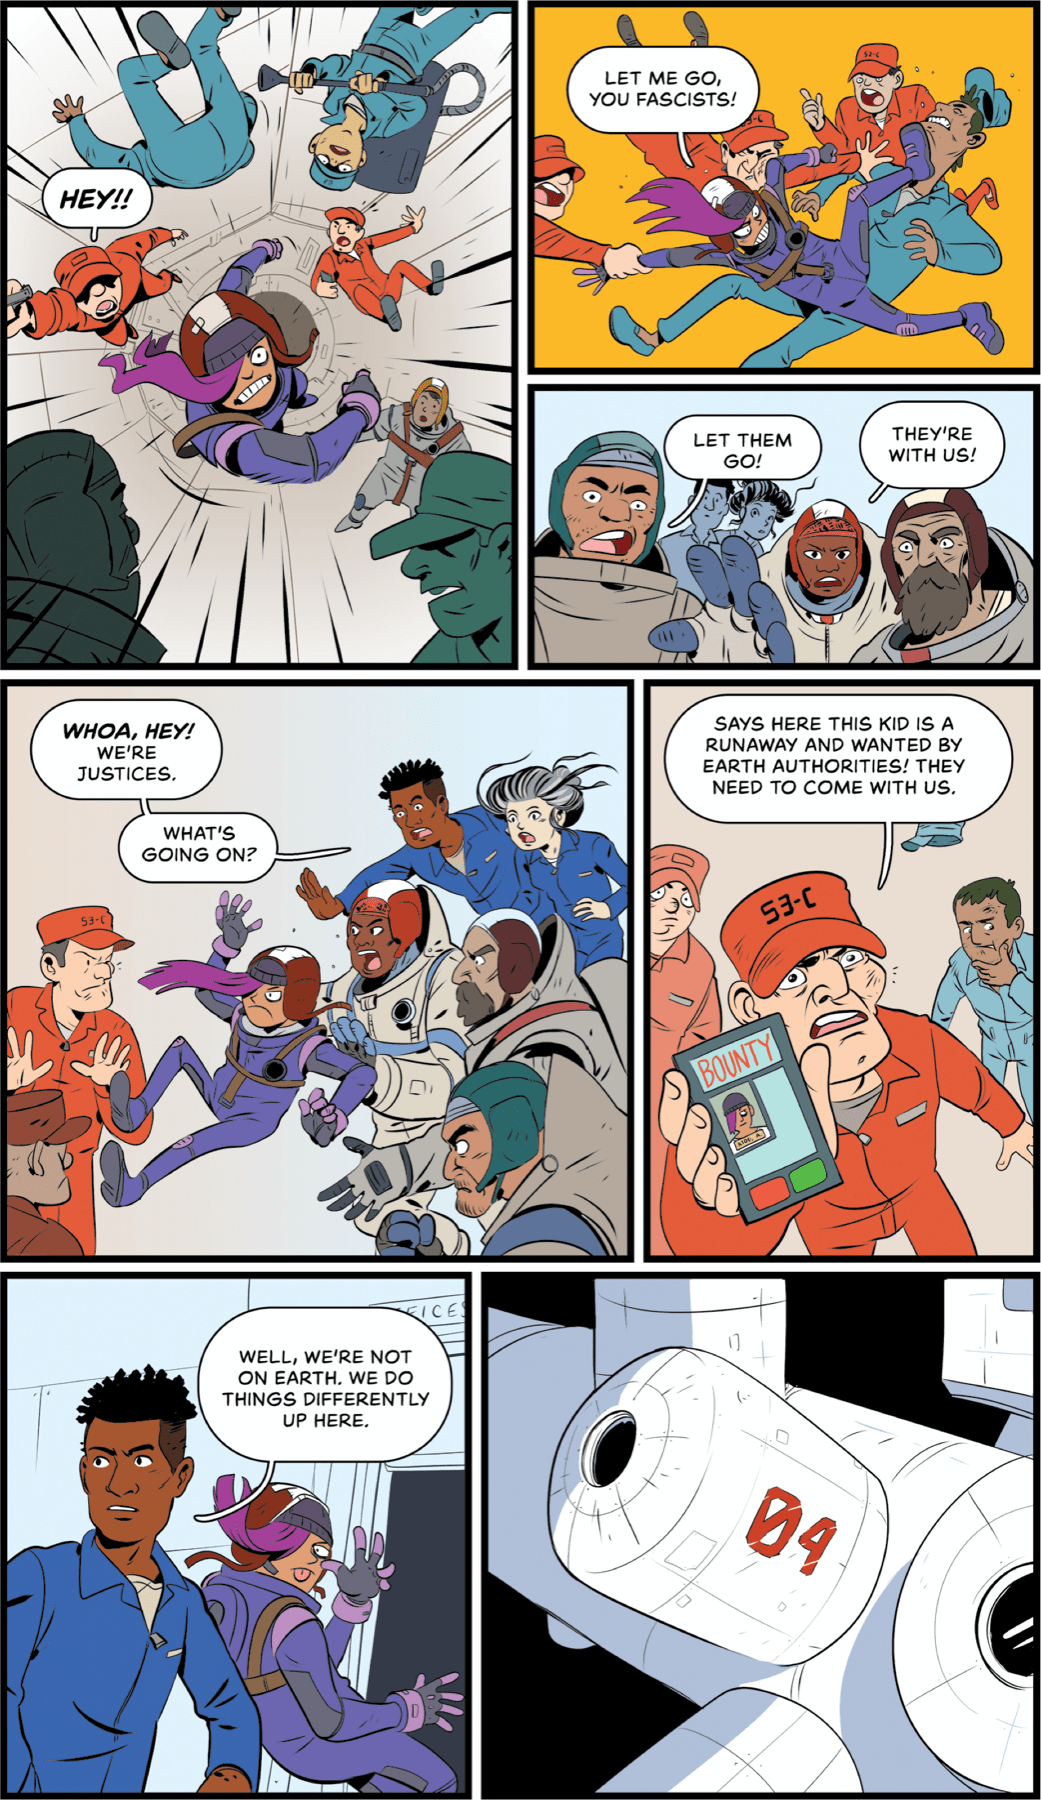 """Panel 1: A kid wearing a different type of flight suit (it's purple and has custom parts and a backpack strapped to it) and a long strand of purple hair coming out from underneath their flight cap rockets out of the dust cloud with an angry, determined look on their face. A mechanic that they barrel past shouts: """"Hey!!"""" Panel 2: The kid is grabbed by one of the mechanics as they manages to elbow and kick two other mechanics. They say: """"Let me go, you fascists!"""" Panel 3: A group of the weary astronaut shout: """"Let them go!"""" and """"They're with us!"""" as Dawn and Mari look on. Panel 4: Dawn and Mari join the jumble of mechanics and astronauts trying to wrestle control over the kid. Dawn shouts: """"Woah, hey! We're justices. What's going on?"""" Panel 5: A mechanic, who appears to be more of an authority figure, holds up a smartphone with the girl's picture on it that says """"bounty."""" The authority says: """"Says here this kid is a runaway and wanted by earth authorities! They need to come with us."""" Panel 6: A closeup on Dawn and the kid, who puts their thumb on their nose and sticks out their tongue as they exits to another module. Dawn says: """"Well, we're not on Earth. We do things differently up here."""""""